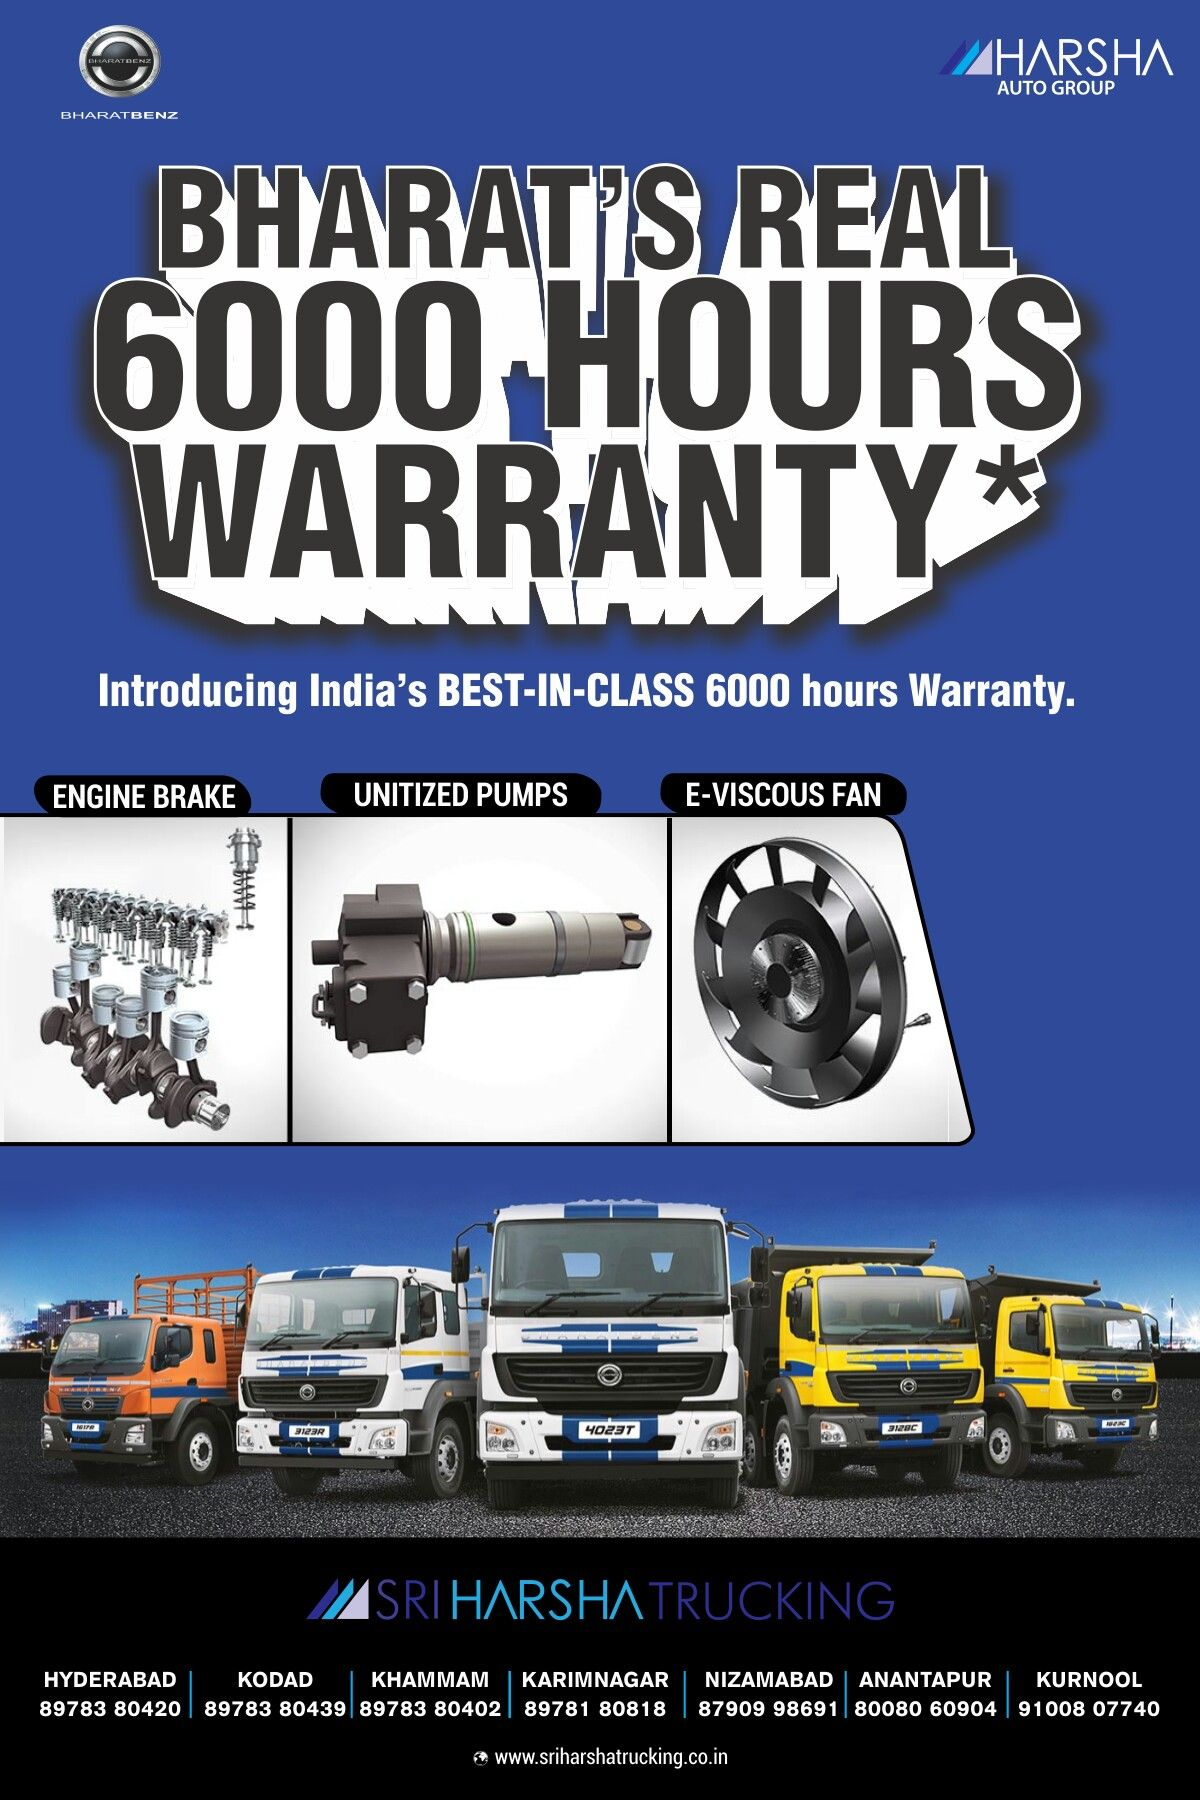 We bring to you our 6 years warranty, the best-in-class in India to